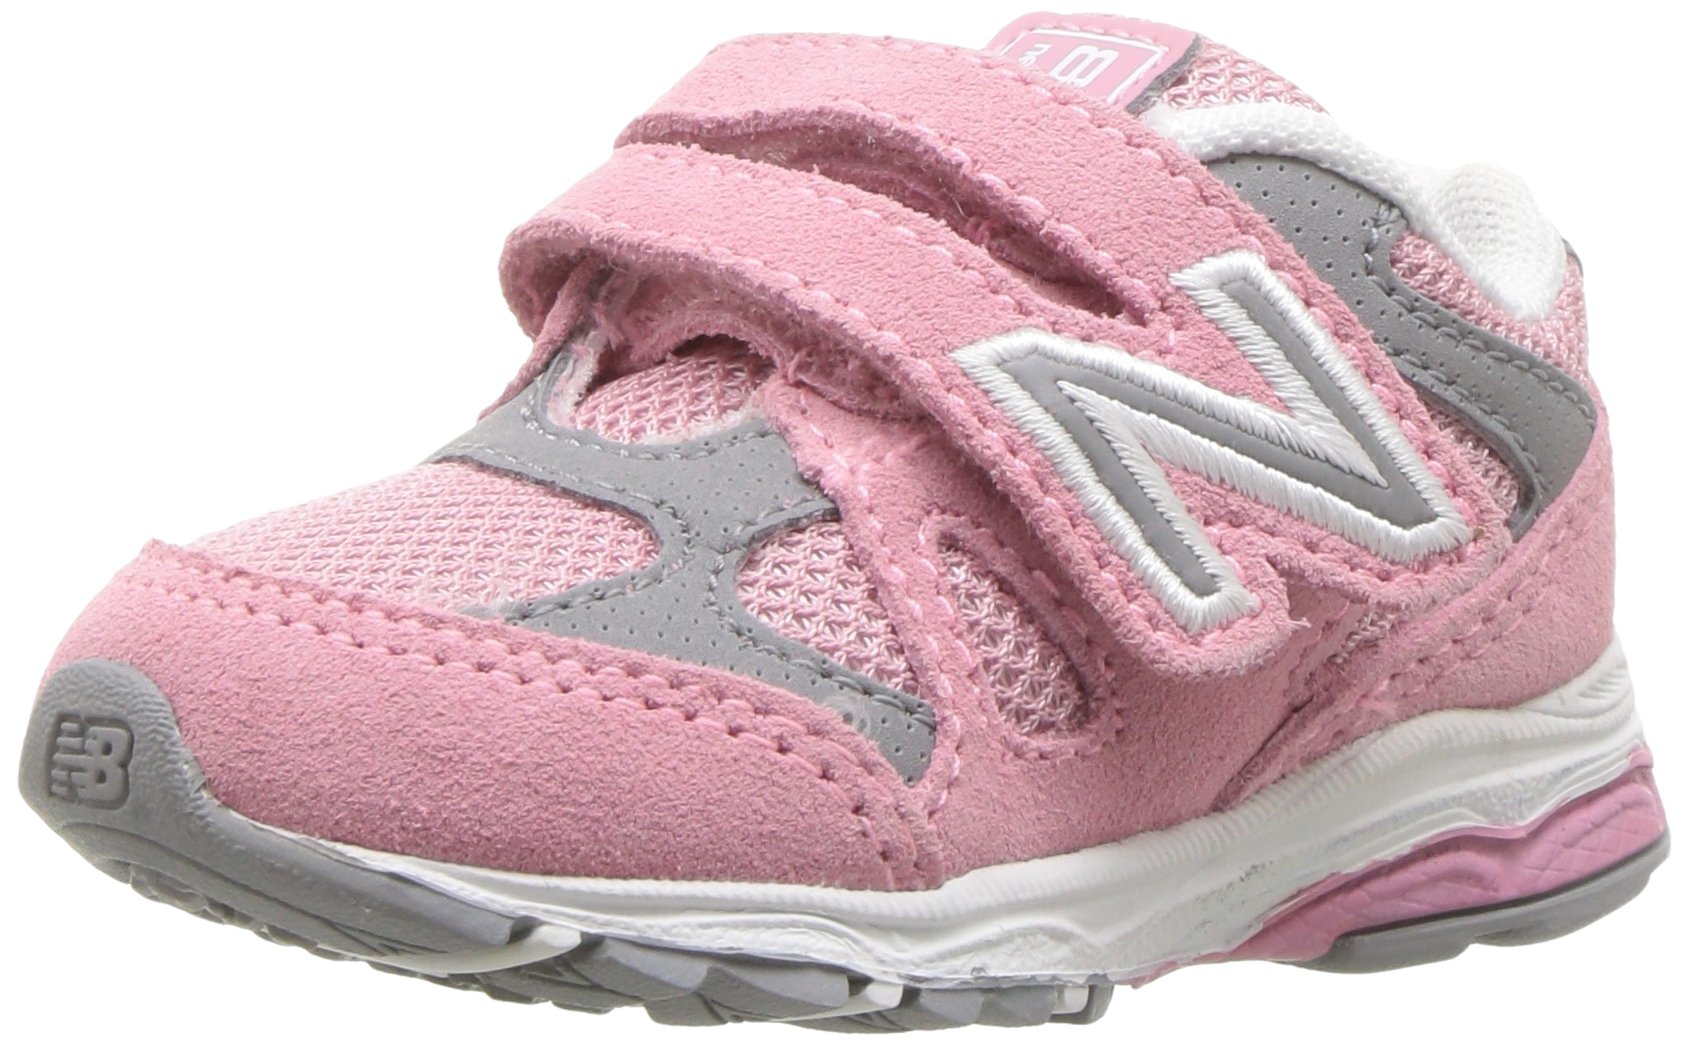 dba94502fbc43 Galleon - New Balance Girls' 888v1 Hook And Loop Running Shoe, Pink/Steel,  3 XW US Infant